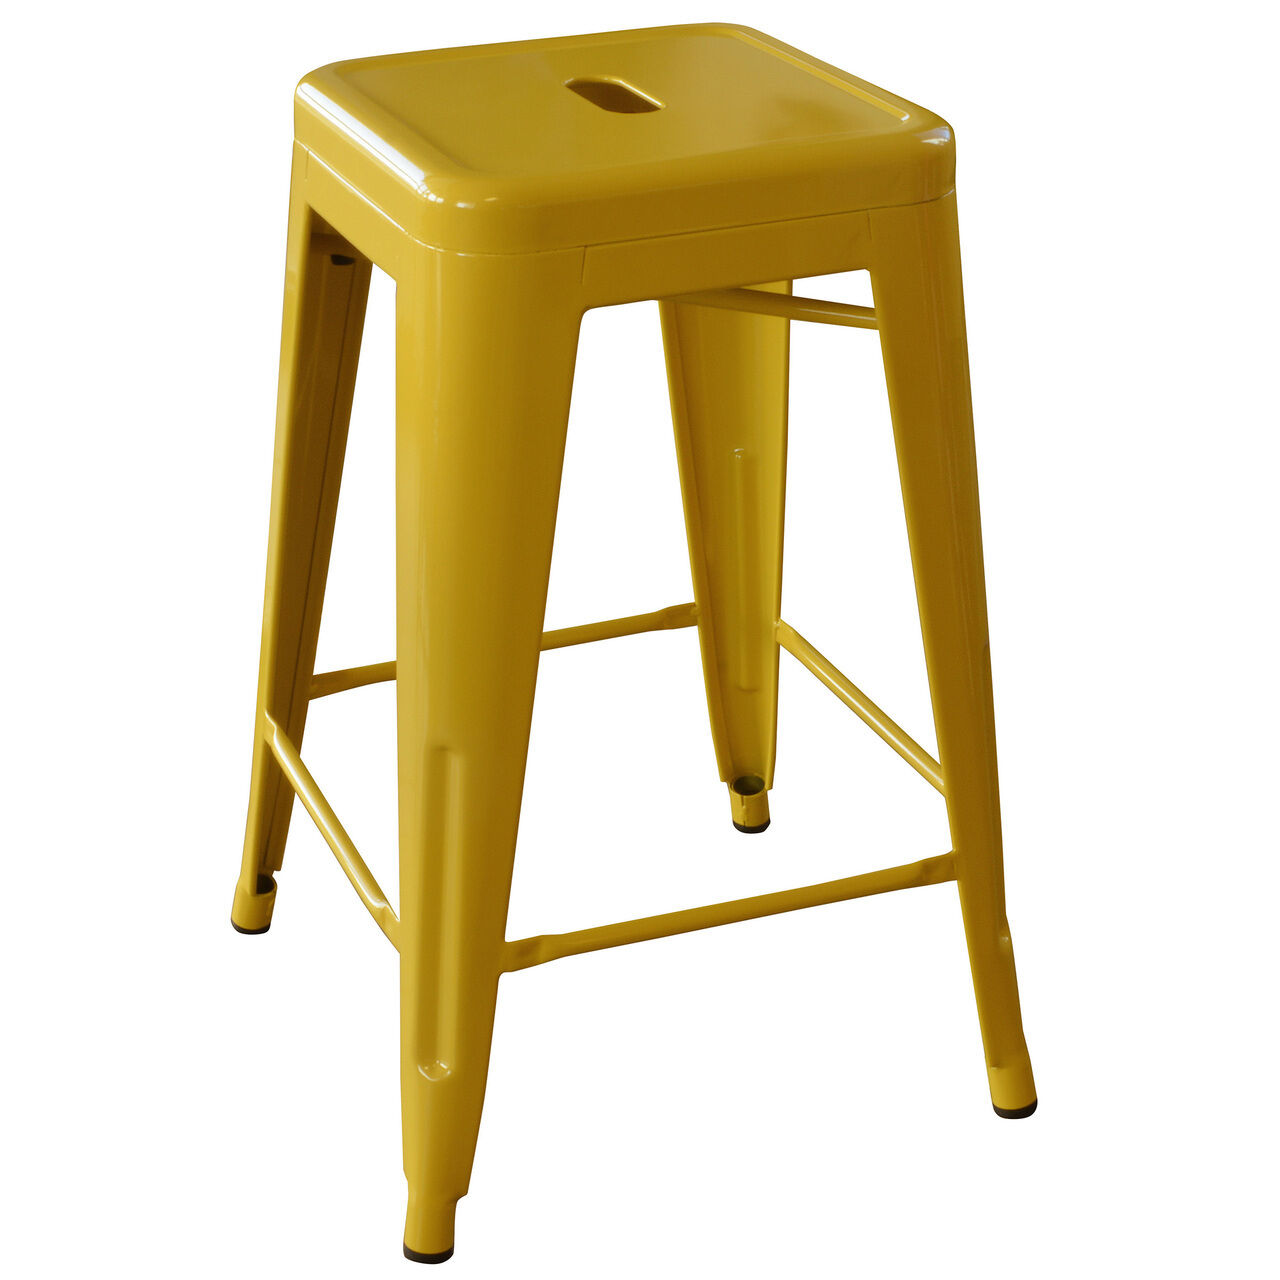 Amerihome Bs24gold 24 Inch Gold Metal Bar Stool 2 Piece